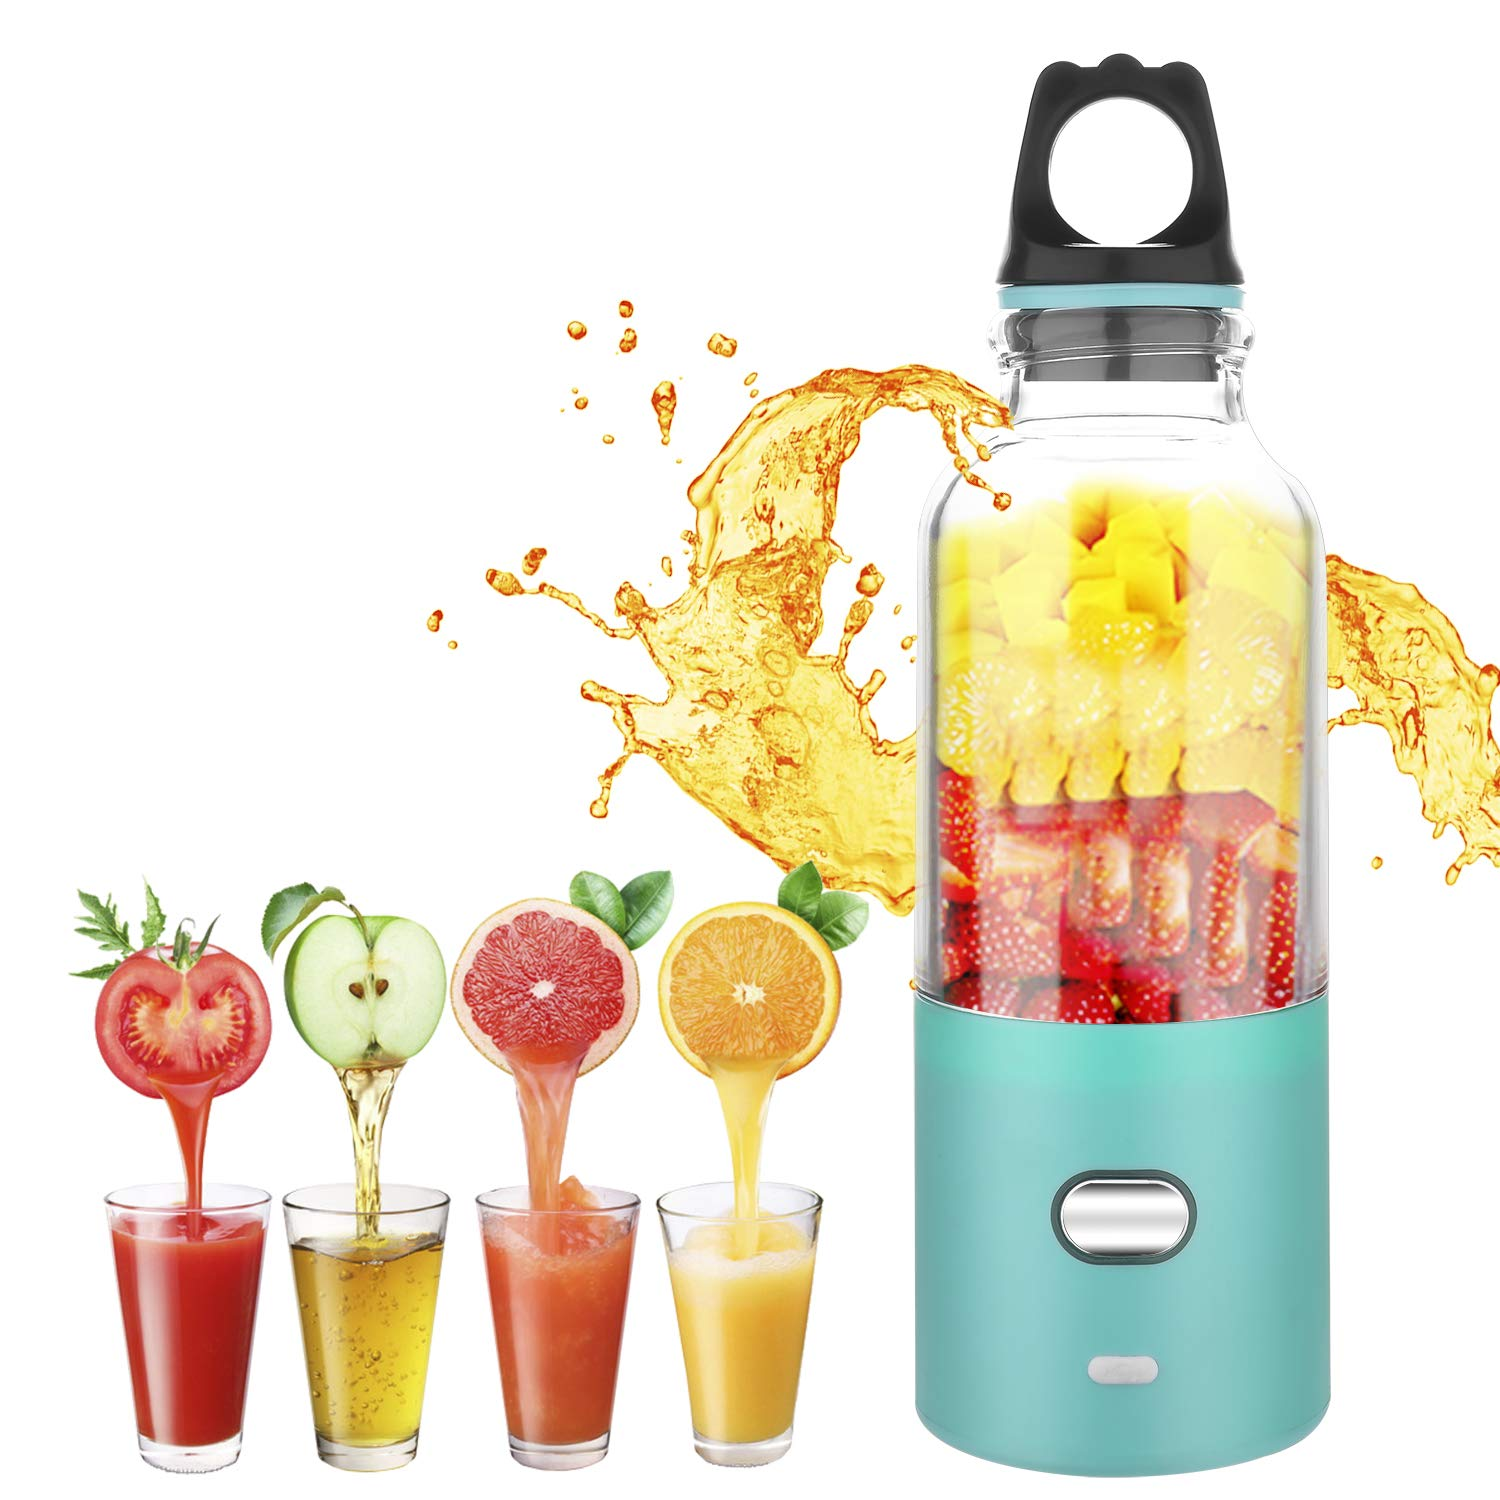 Portable Blender, Alegender Household Mini Juicer with 500ml Capacity, USB Interface & Rechargeable and 6 PCS Blades for Traveling Working Outdoors